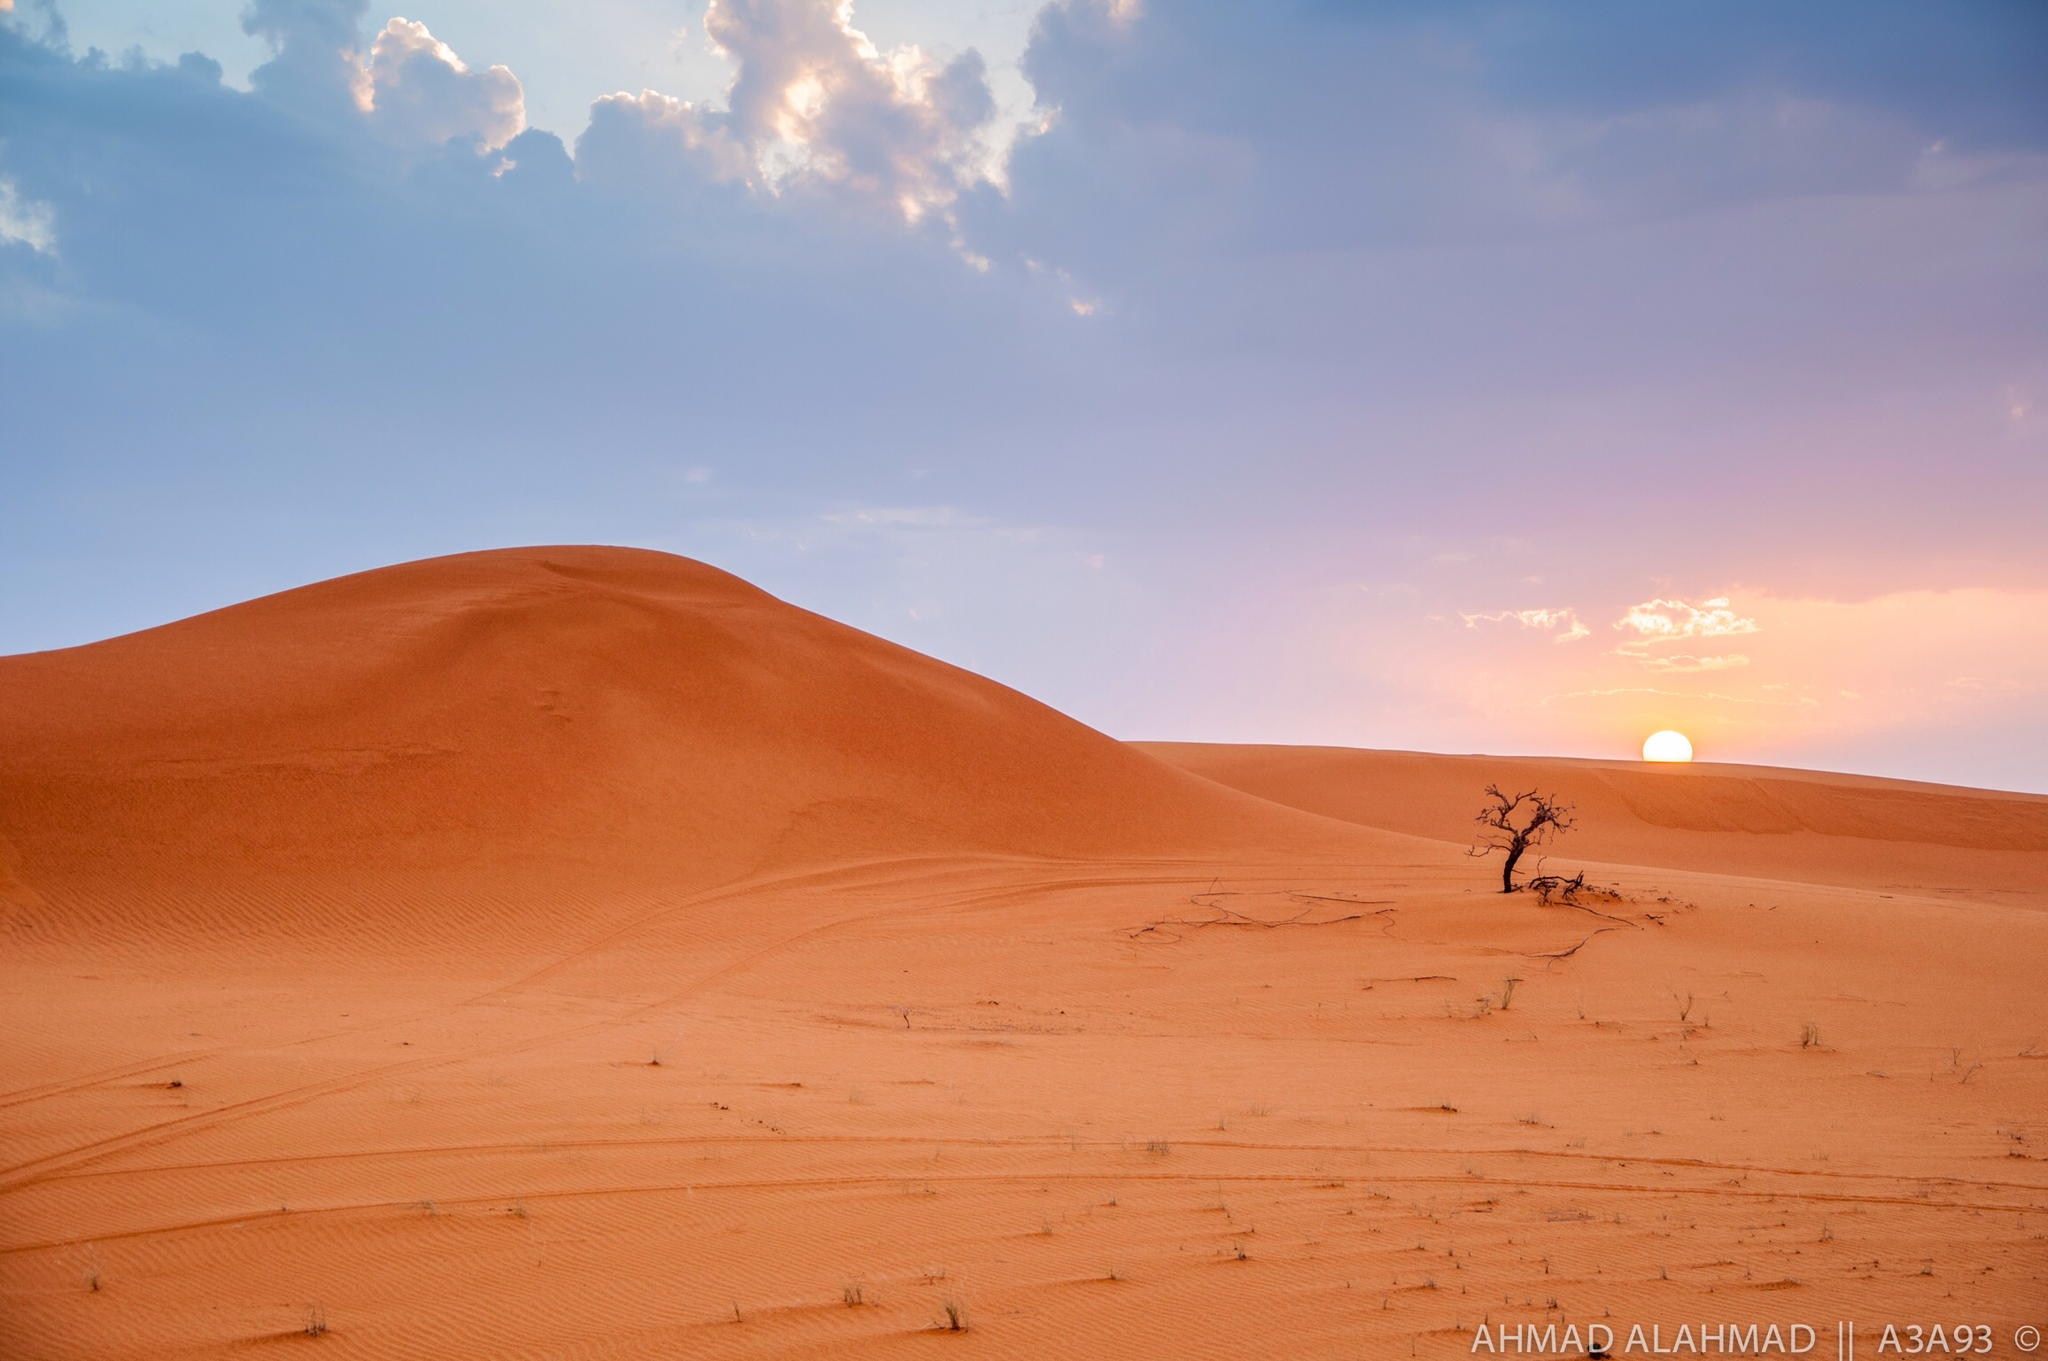 A lonely tree in the desert at sunset - Saudi Arabia, by Ahmad BinAhmad